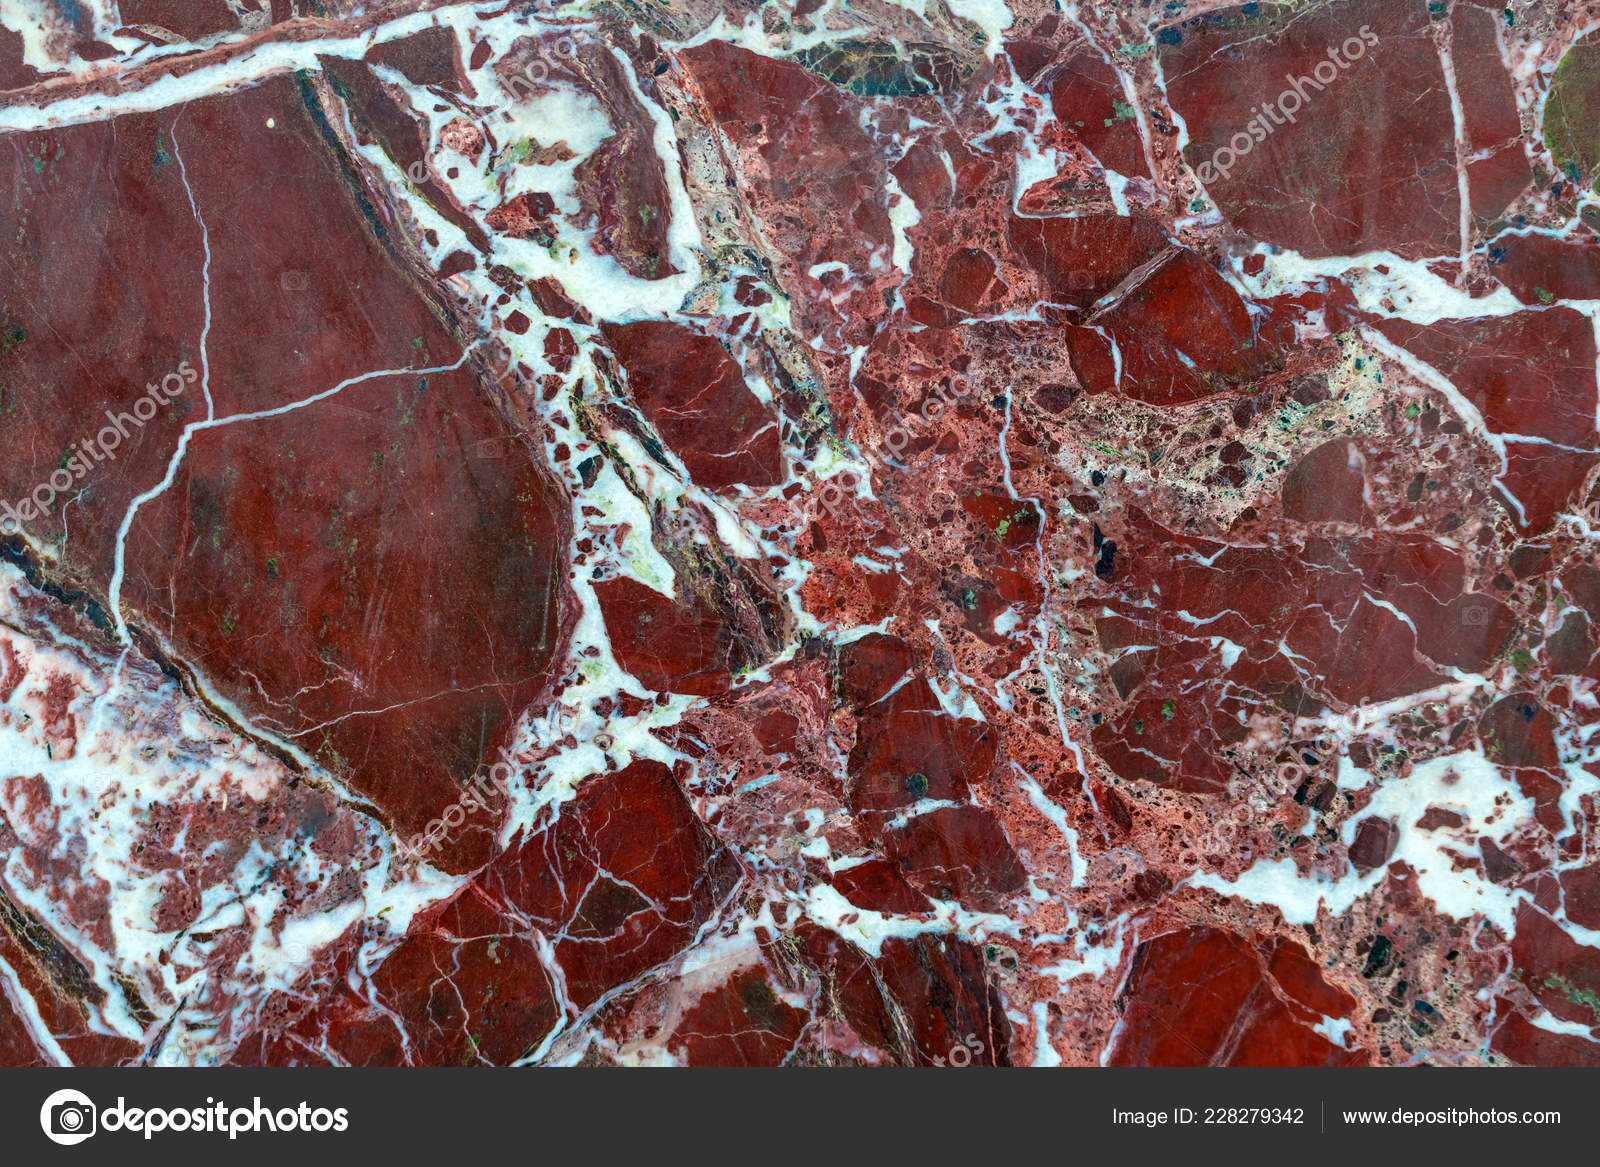 Red Brown Marble Texture White Colors Streaks Stock Photo C Dmvlmur 228279342